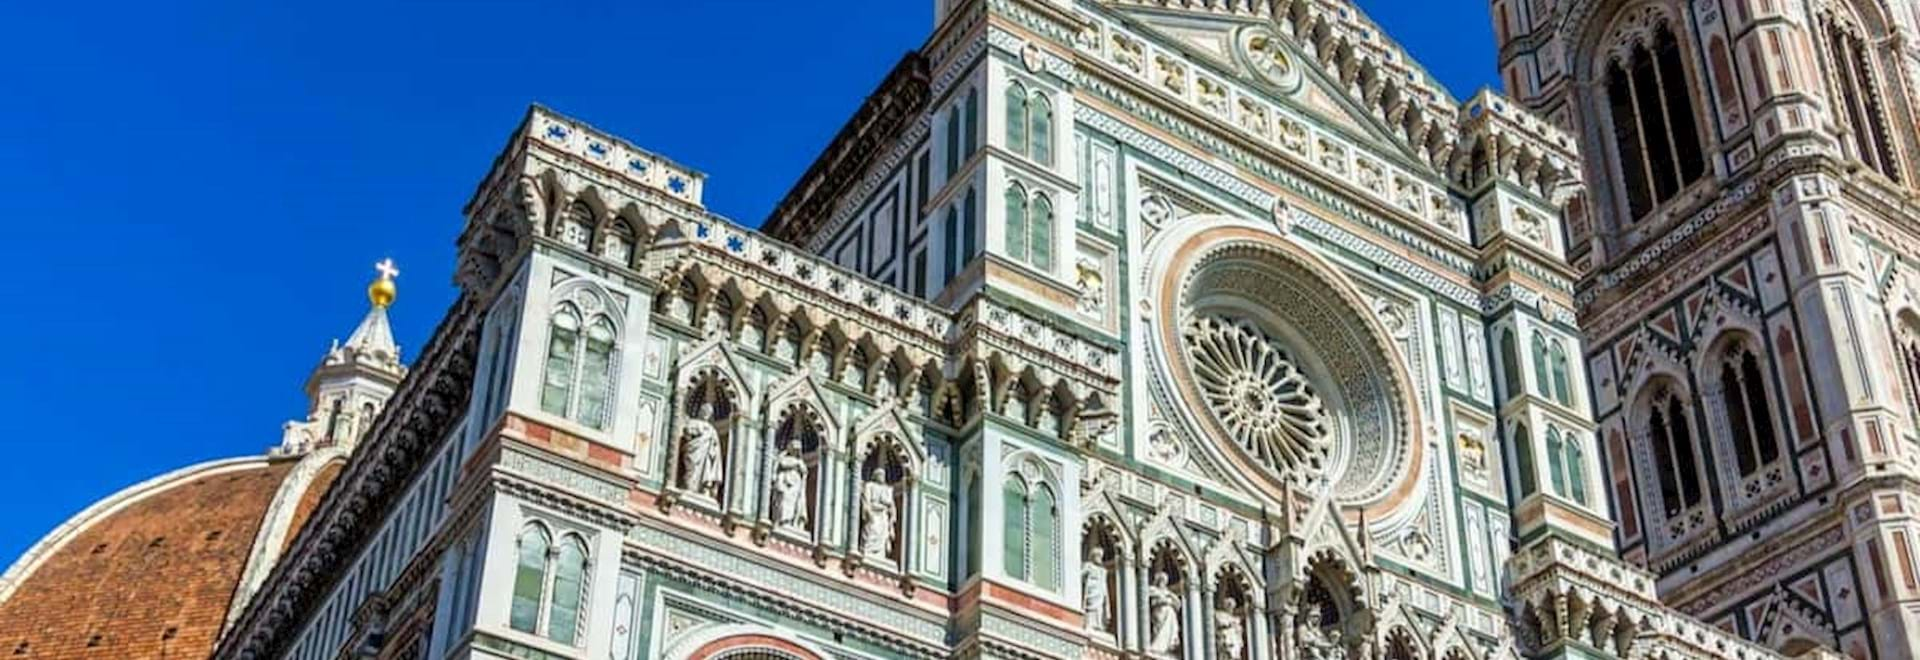 Front of Florence Cathedral with Tower